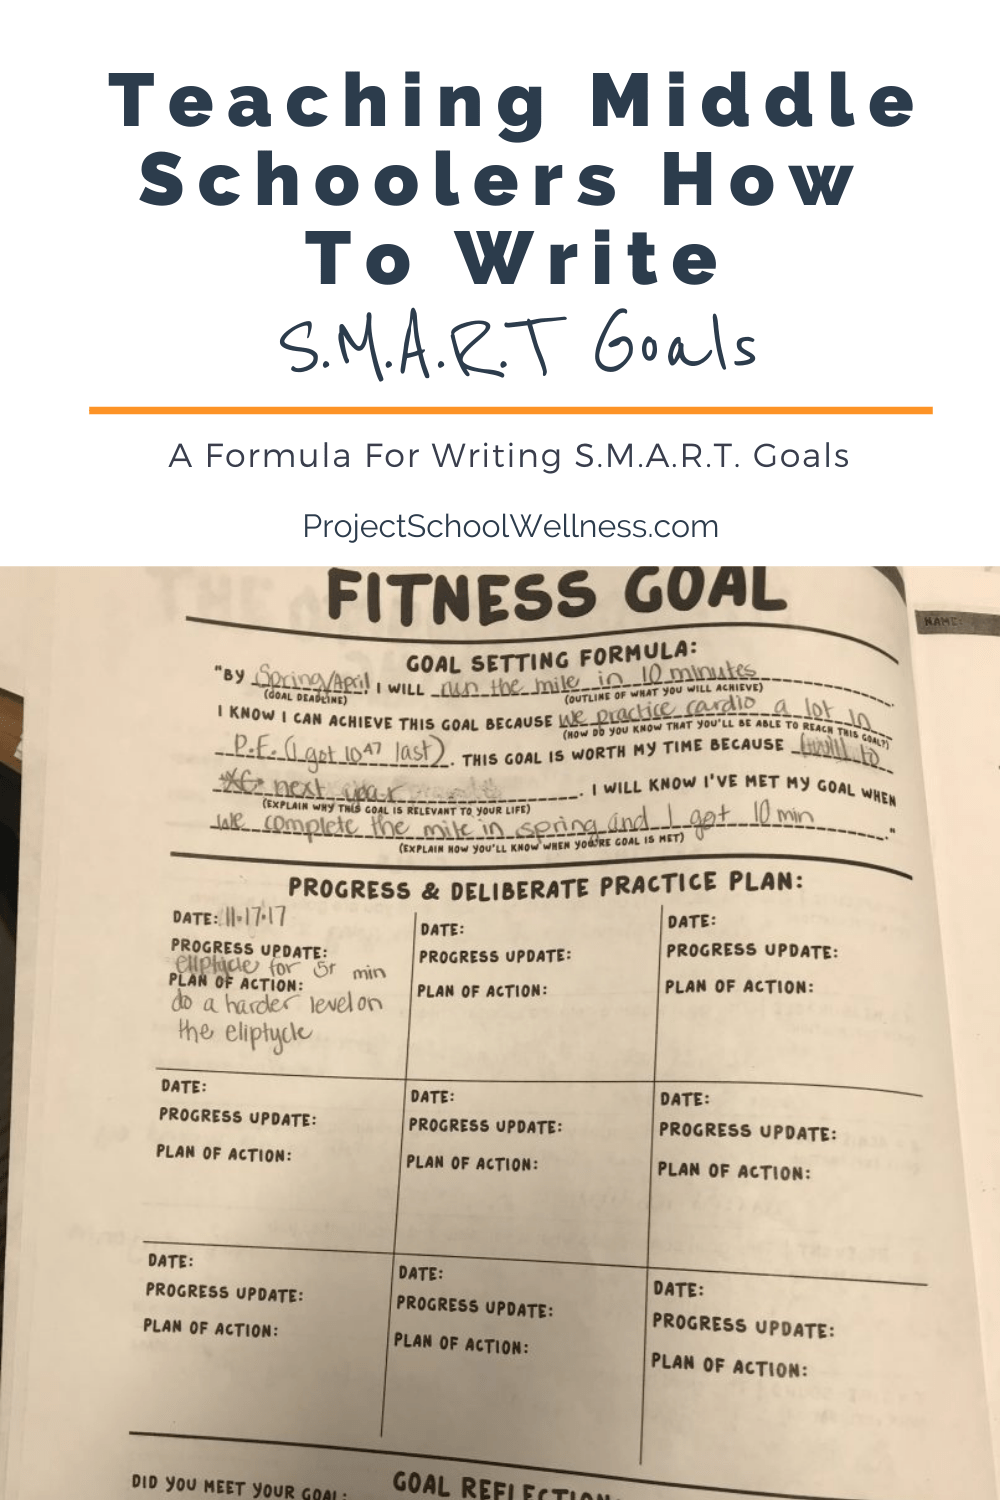 How to teach students how to write goals using the SMART goal formula - a look at the health education skill of writing goals